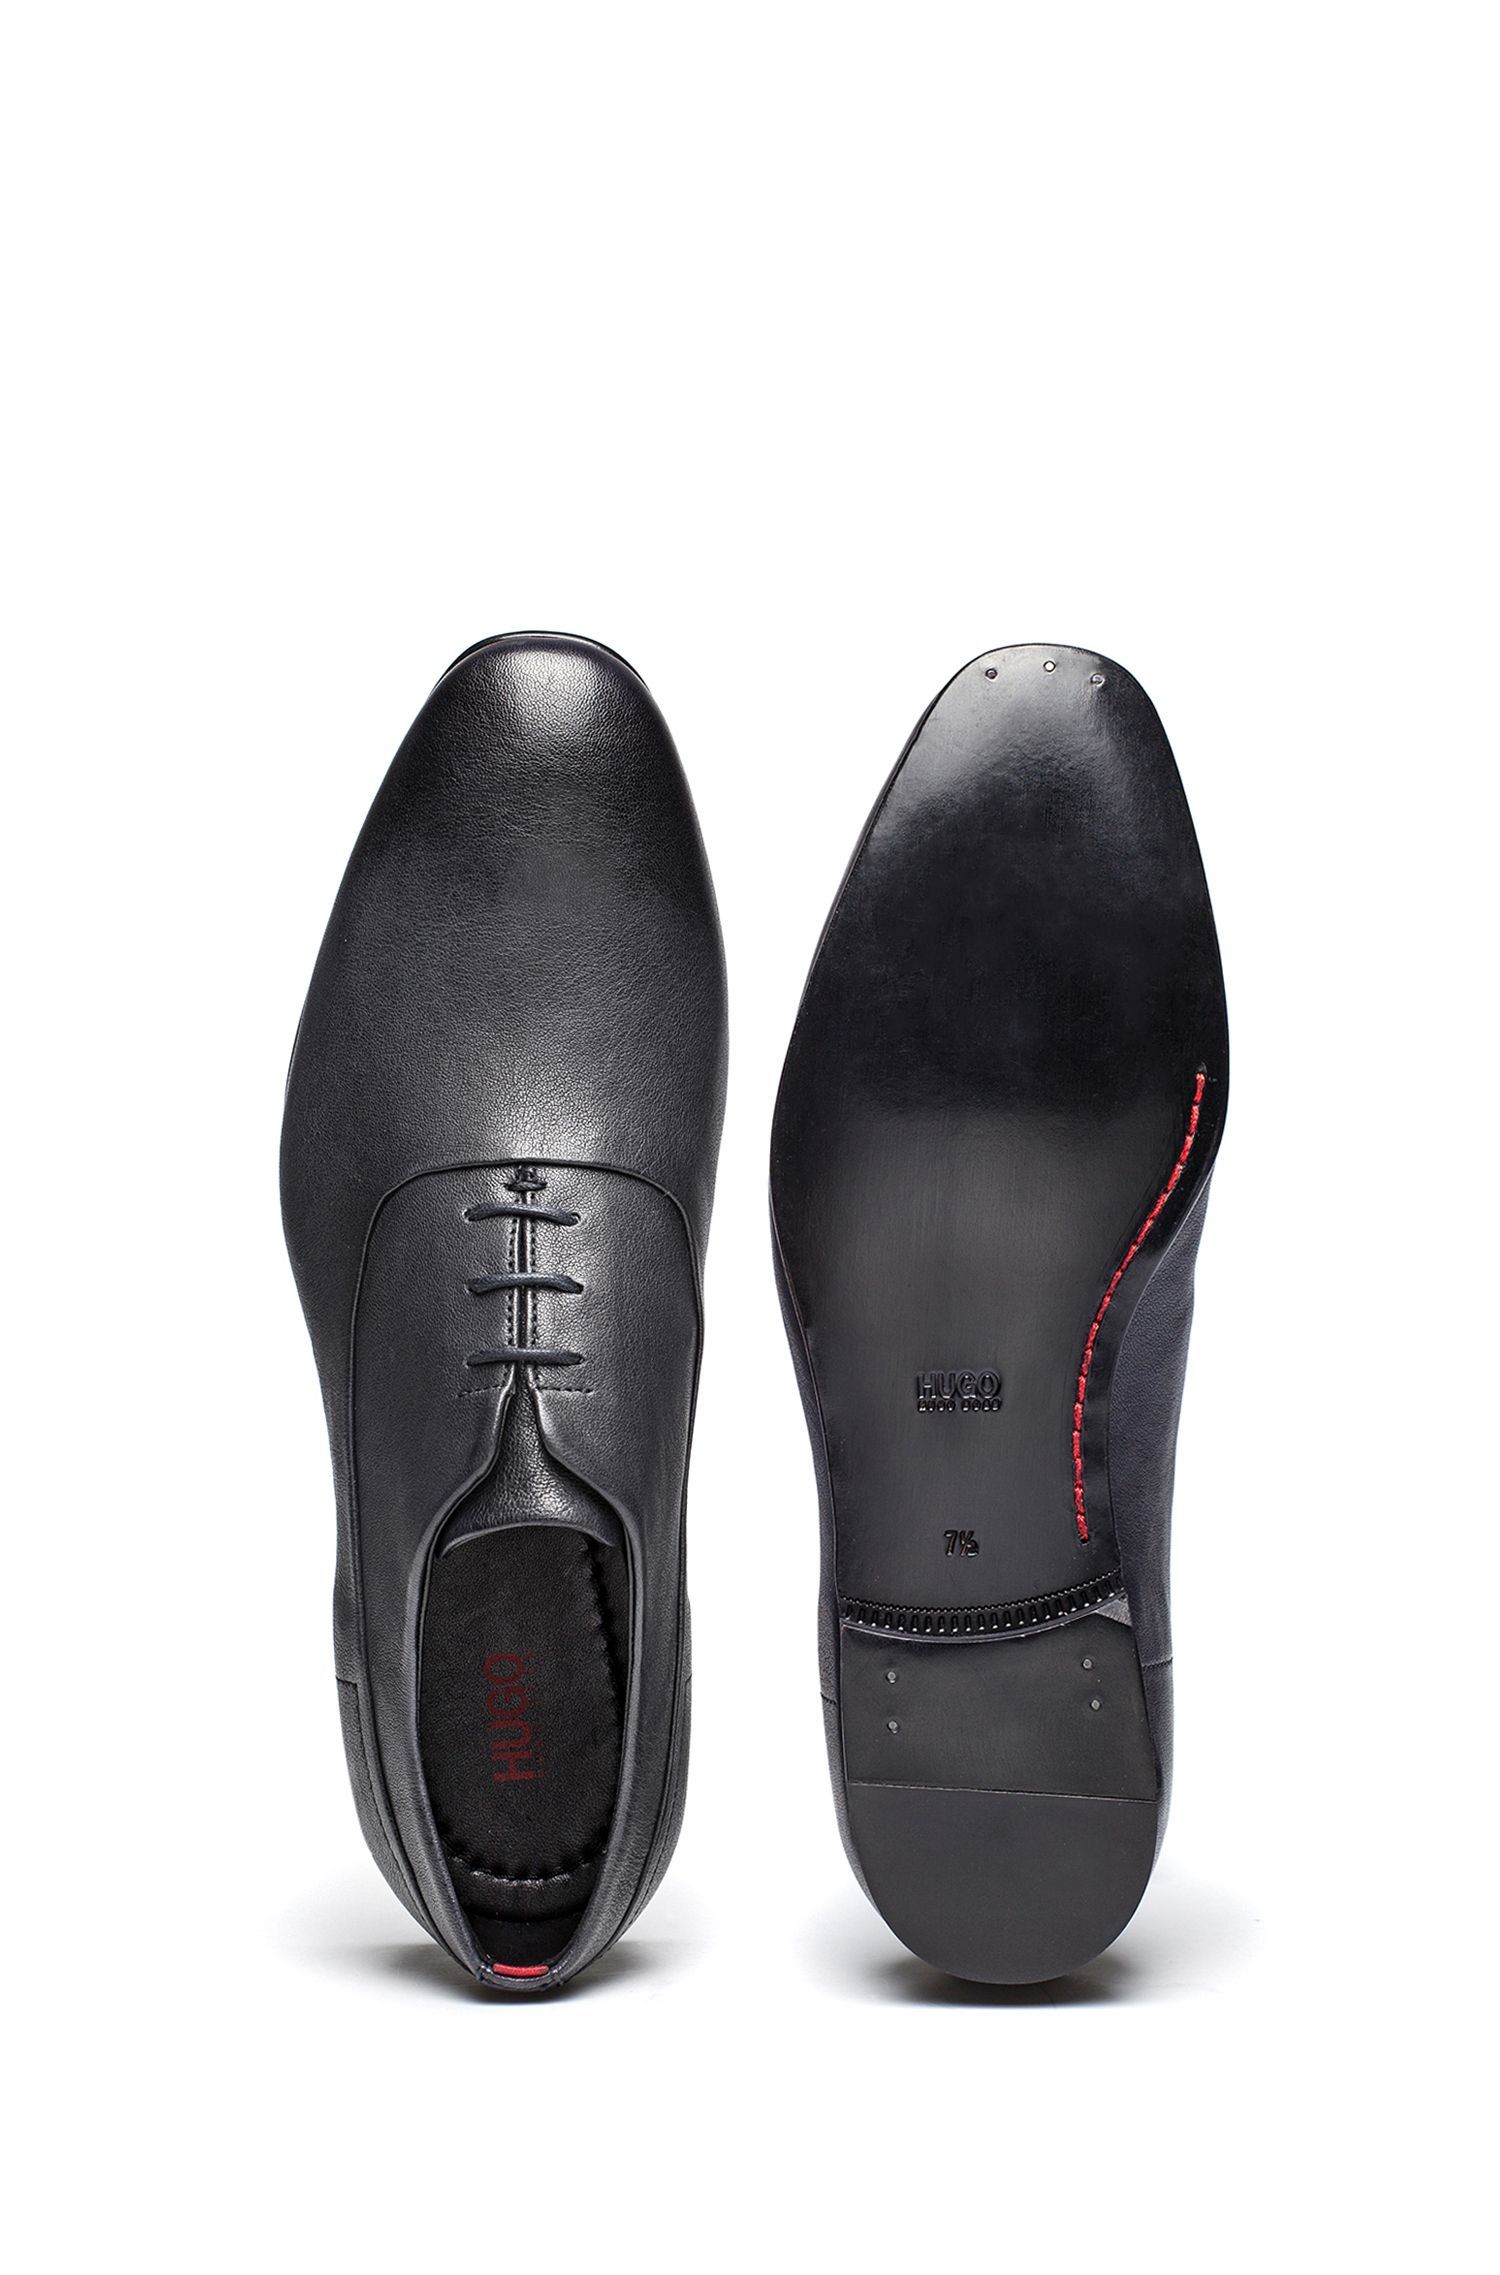 Leather Oxford Dress Shoes | Cordoba Oxfr Gr